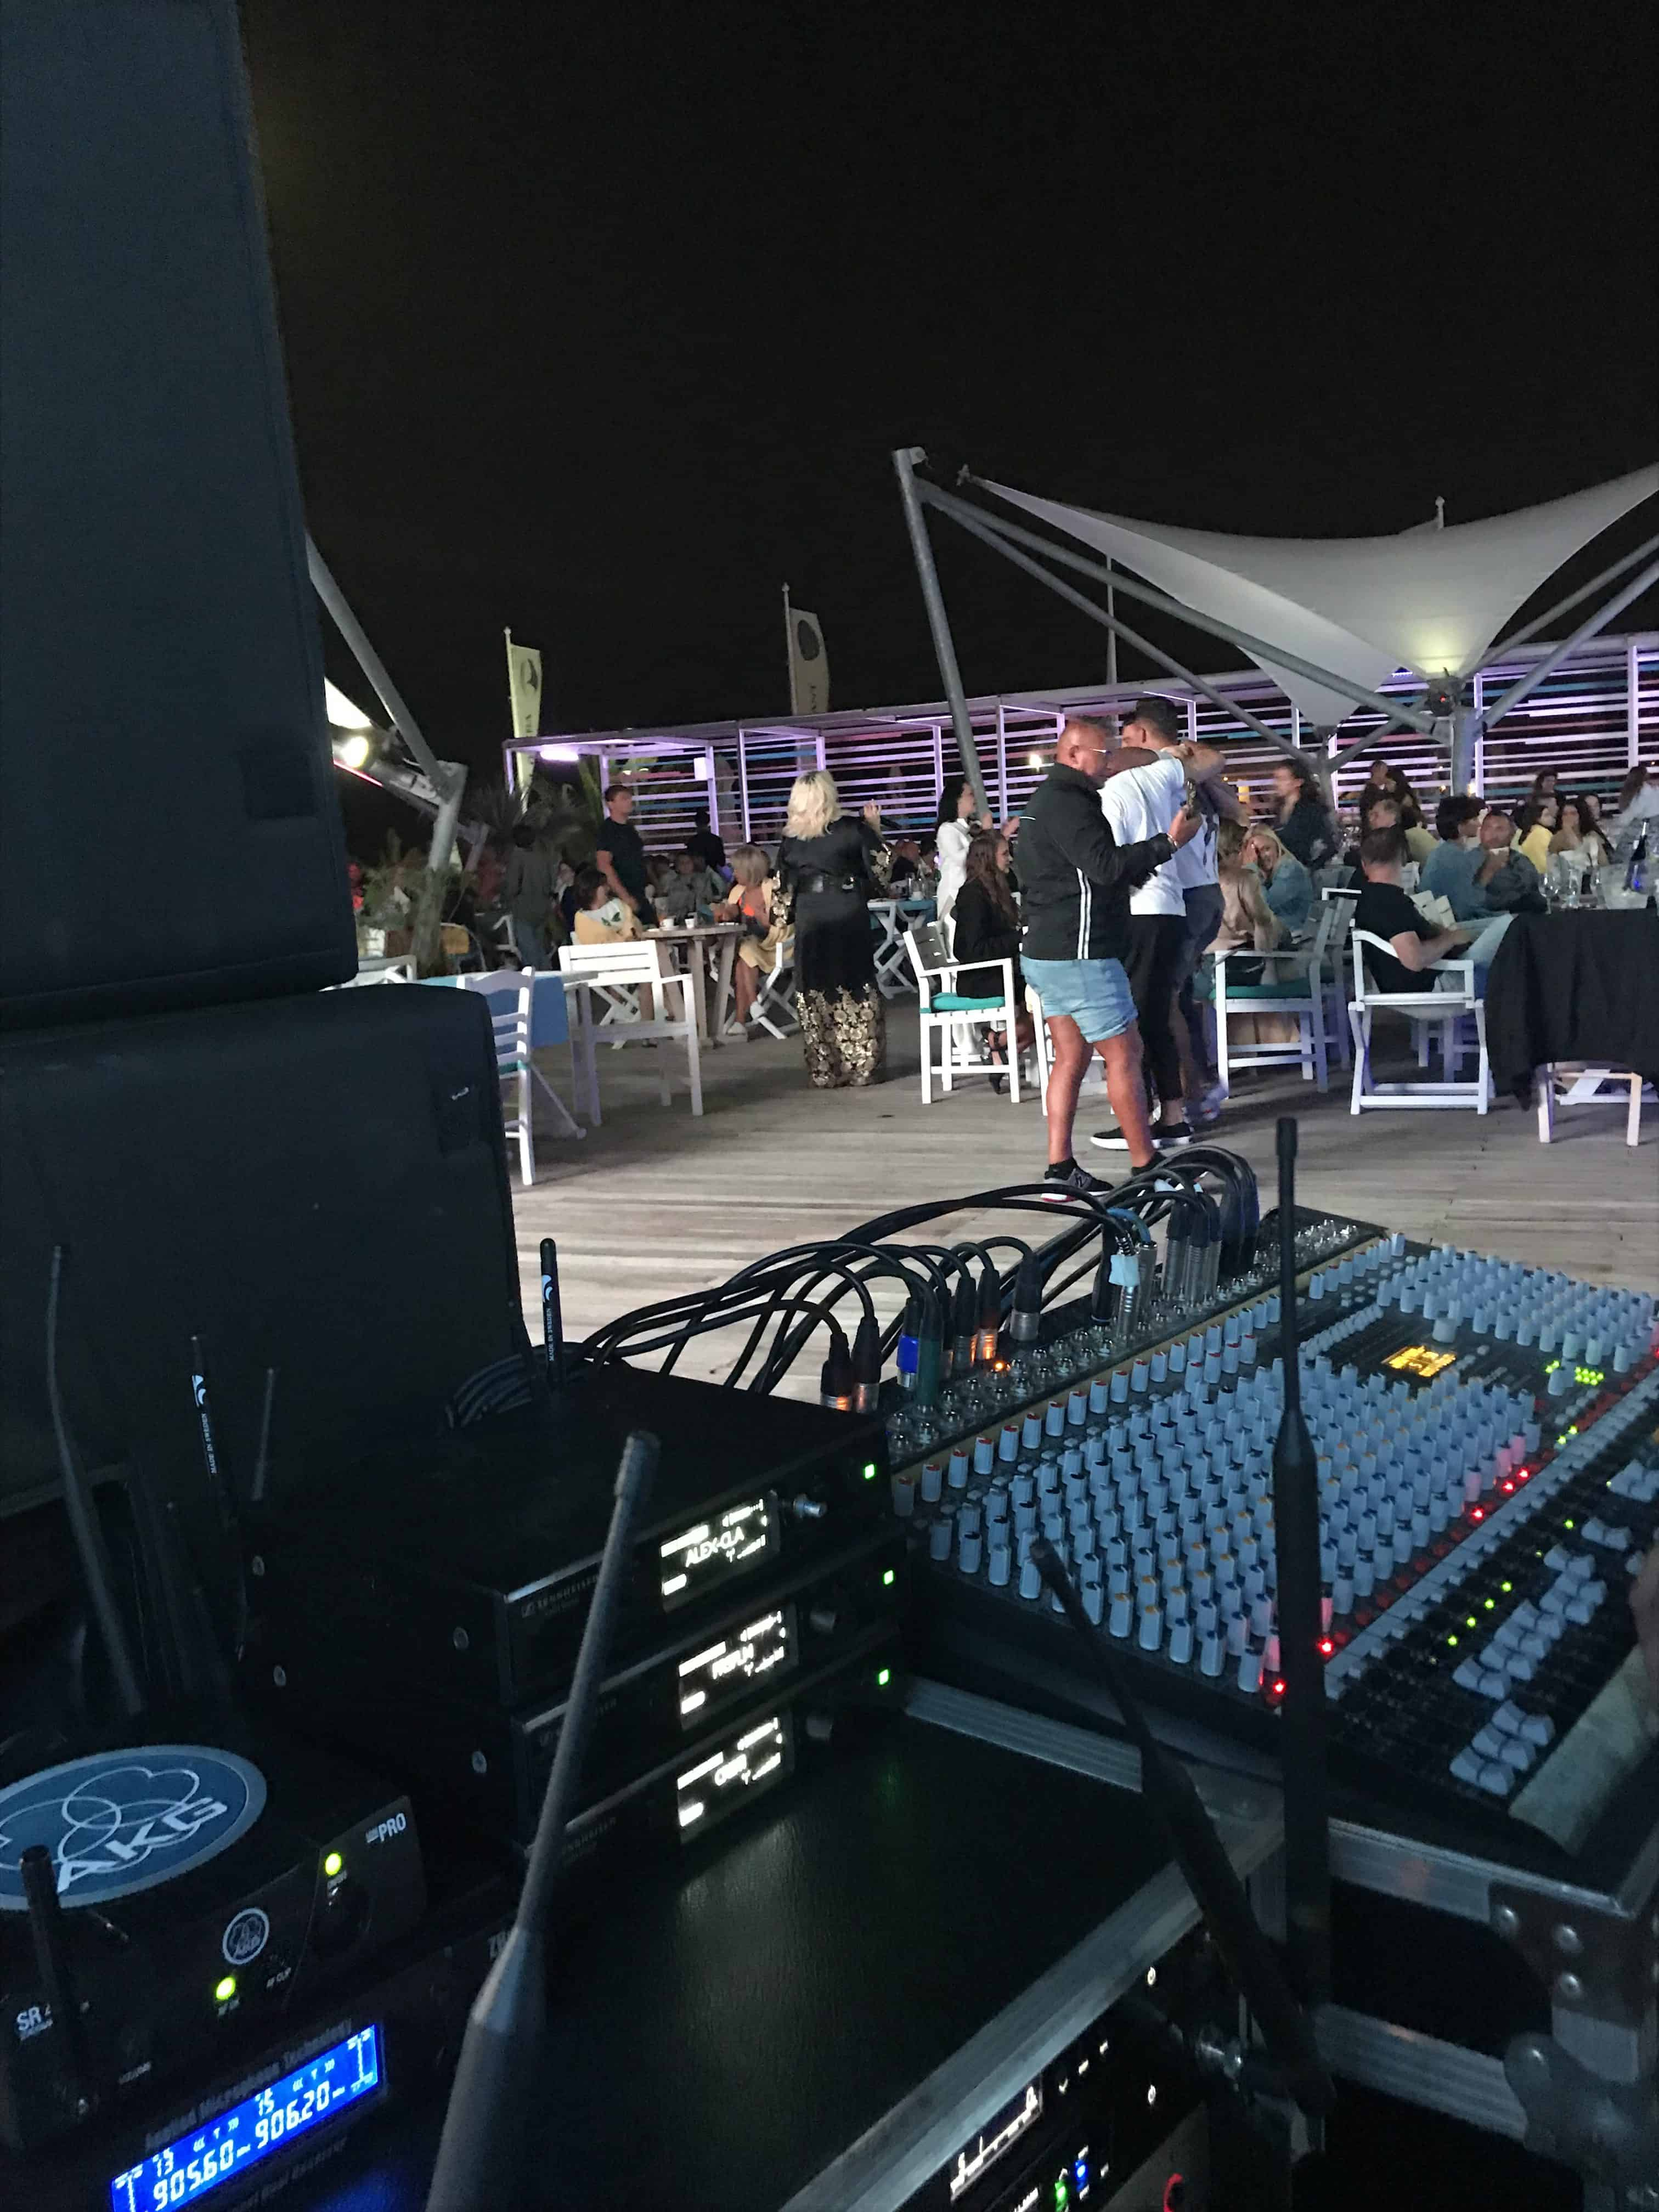 White Tower Mamaia . - Dj Evenimente, Dj Petreceri Private